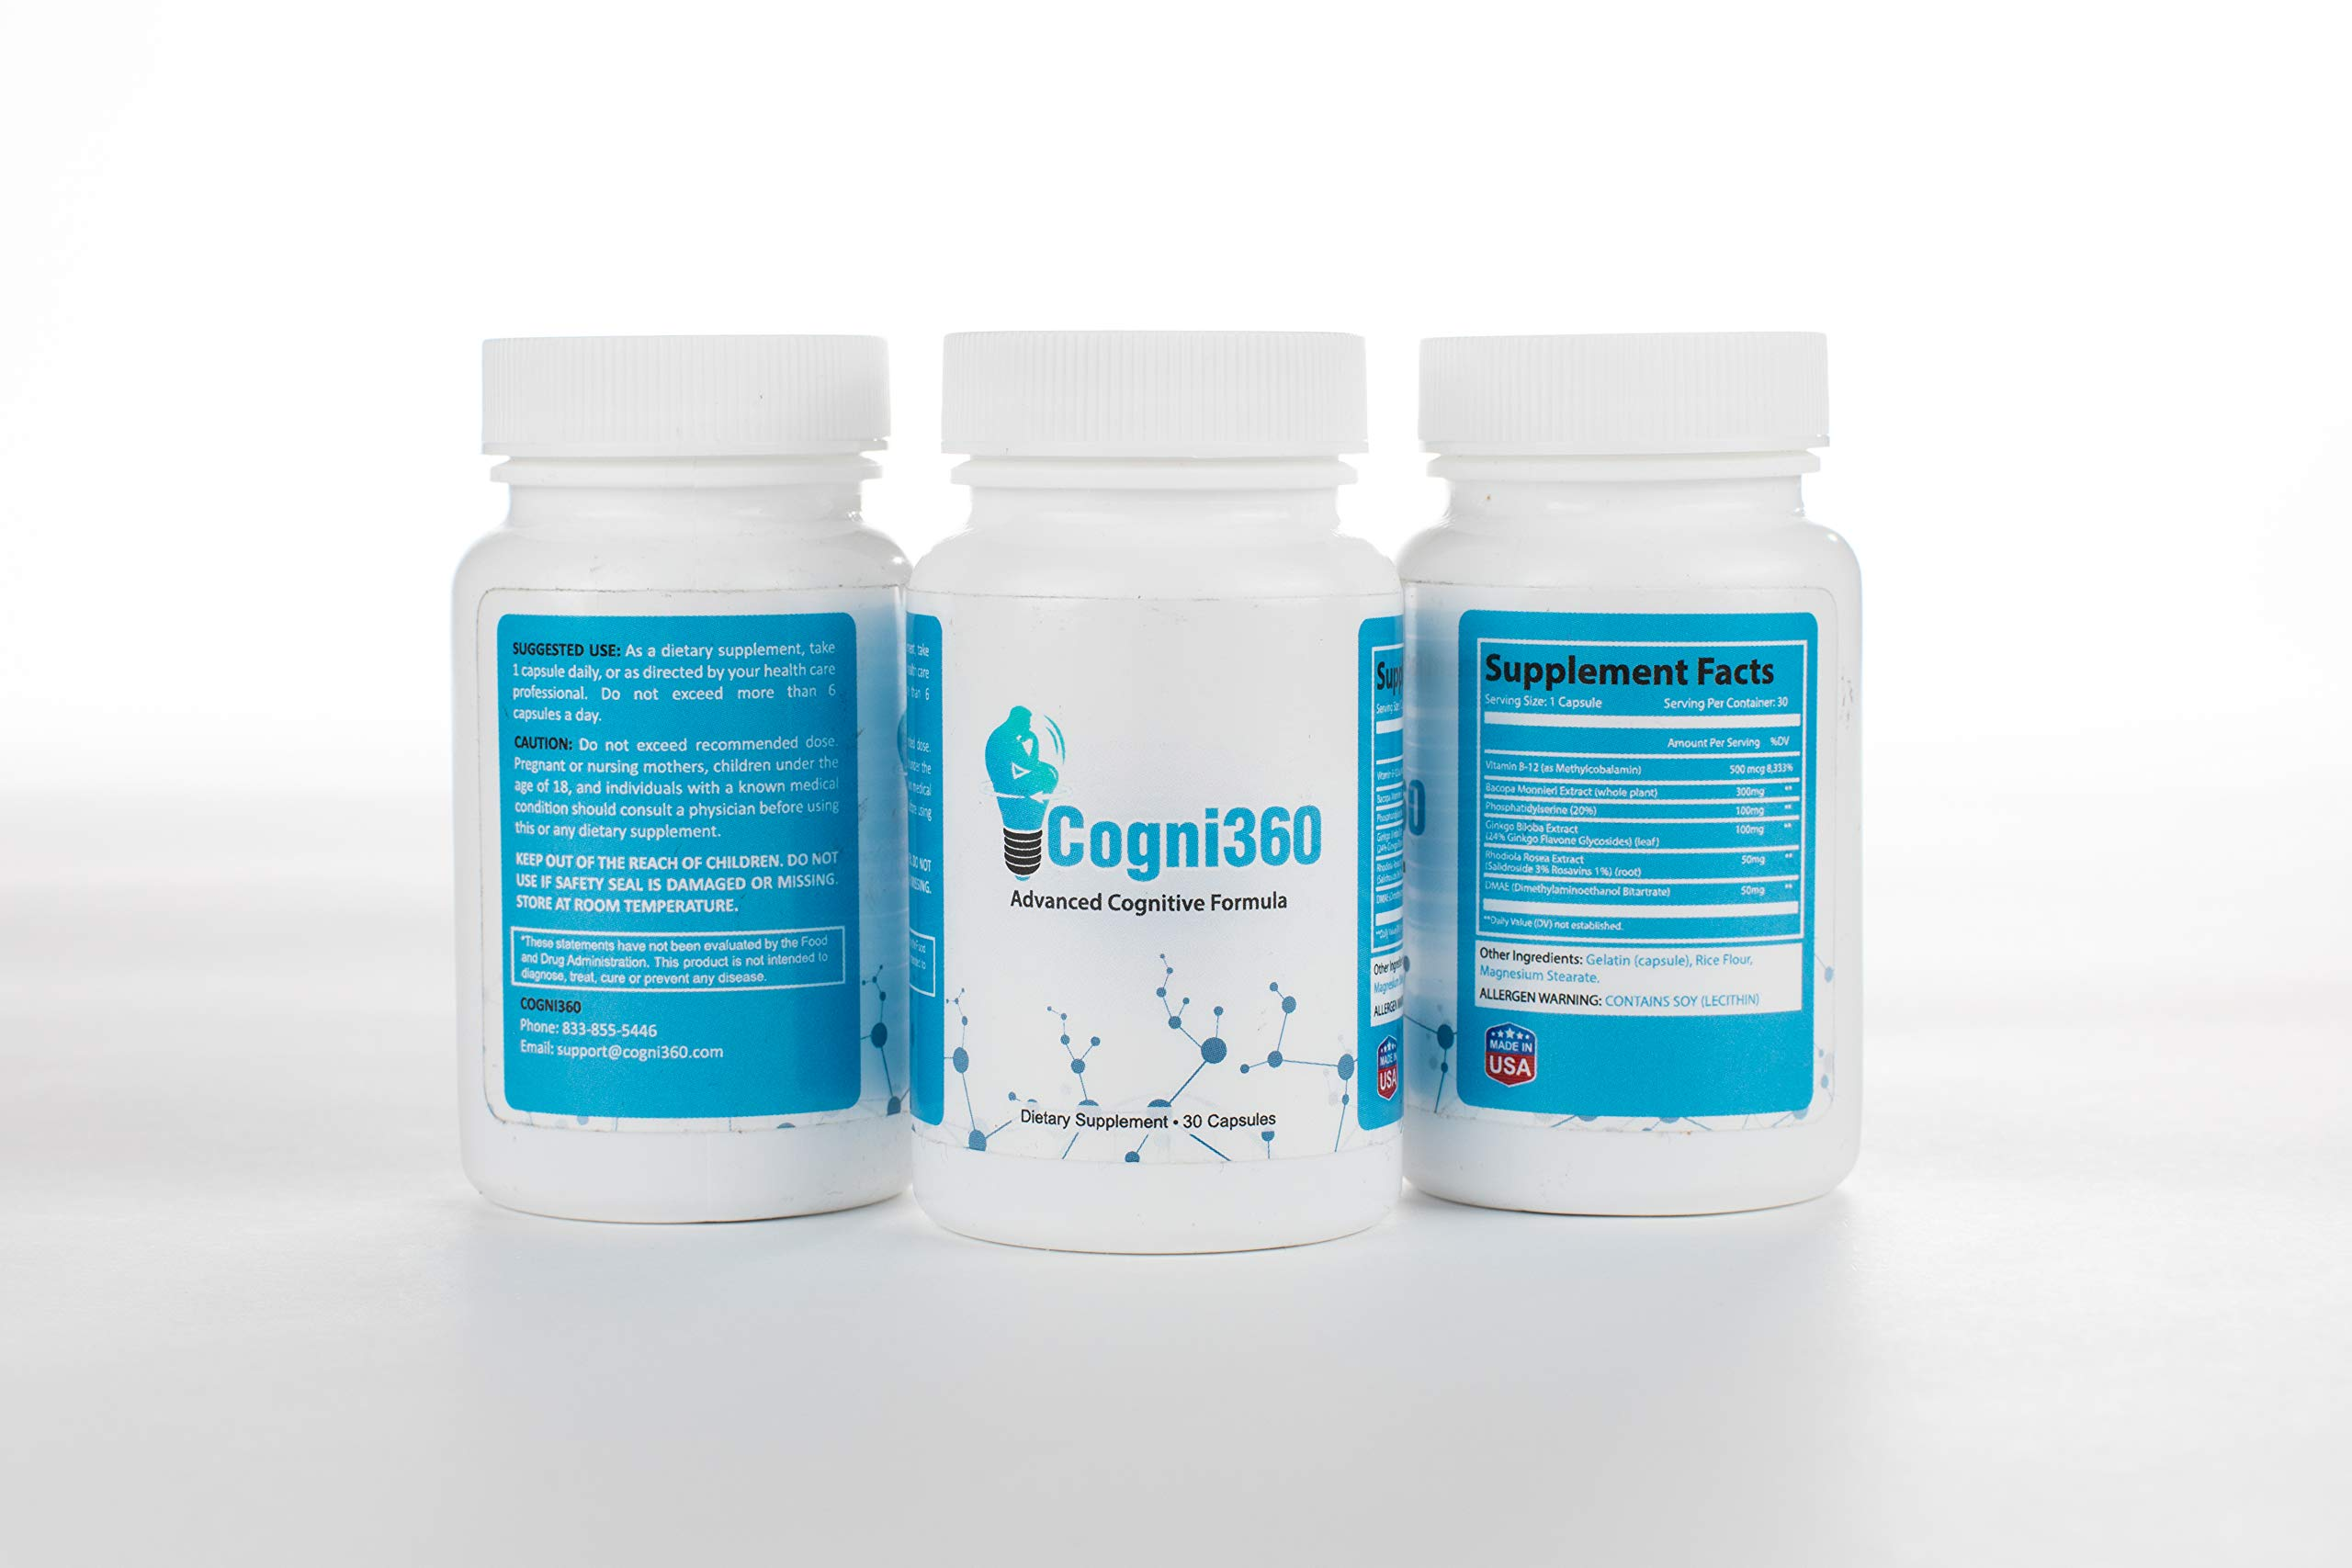 Cogni360 Extra Strength Brain Supplement - 3 Pack - for Focus, Energy, Memory & Clarity - Mental Performance Nootropic with Super Ginkgo Biloba